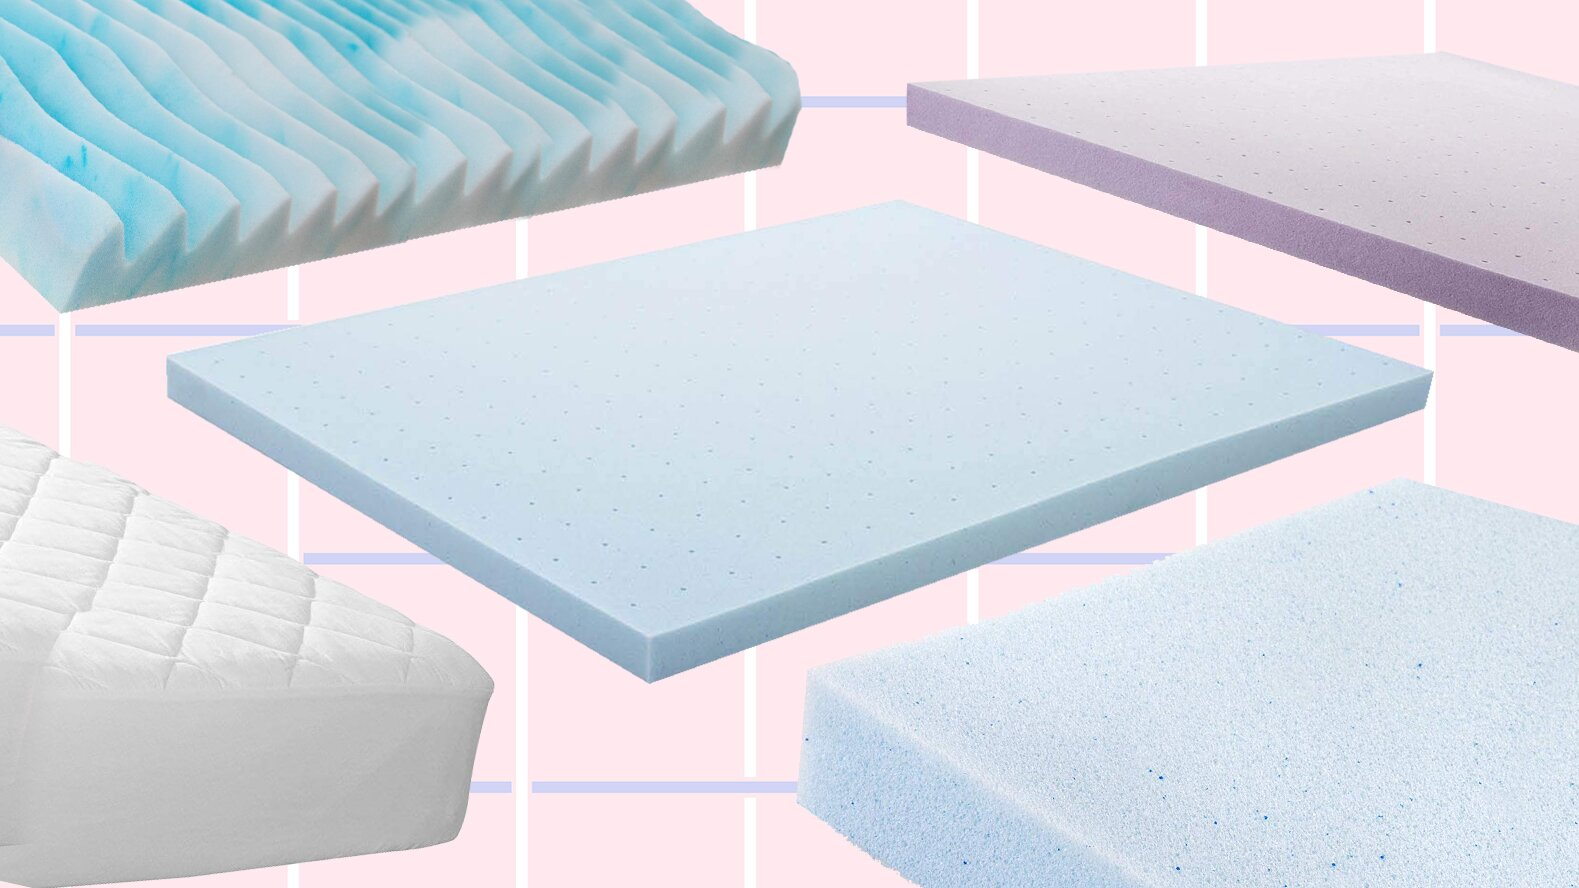 wholesale dealer 89a5e a2c0b The 11 Best Mattress Toppers, According to Customers | Real ...